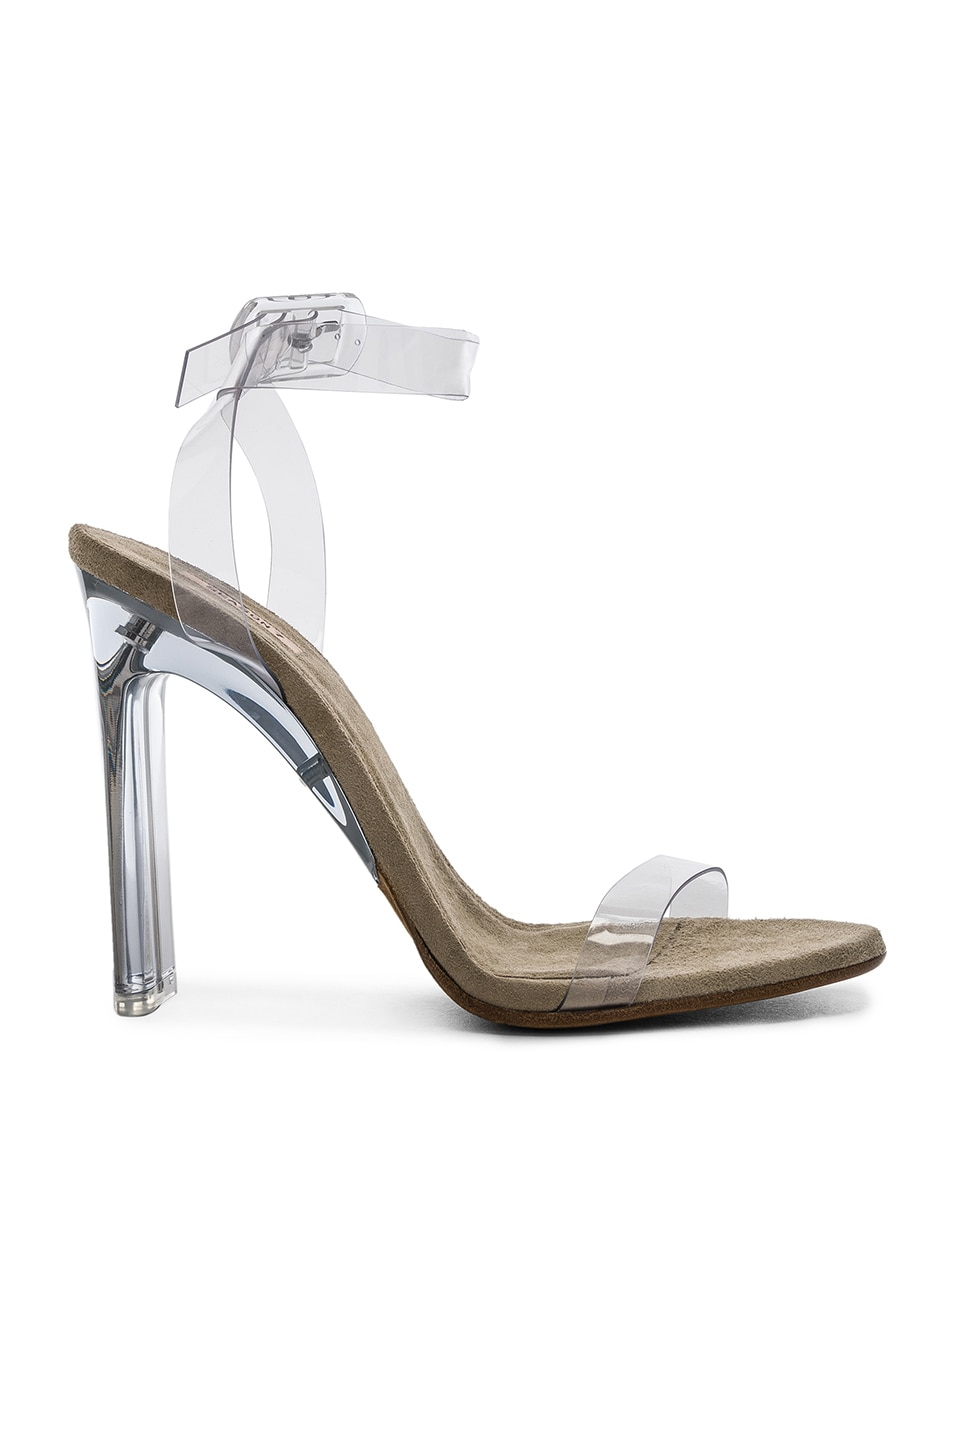 87bf4befb Image 1 of YEEZY Season 6 Ankle Strap PVC Heels in Clear